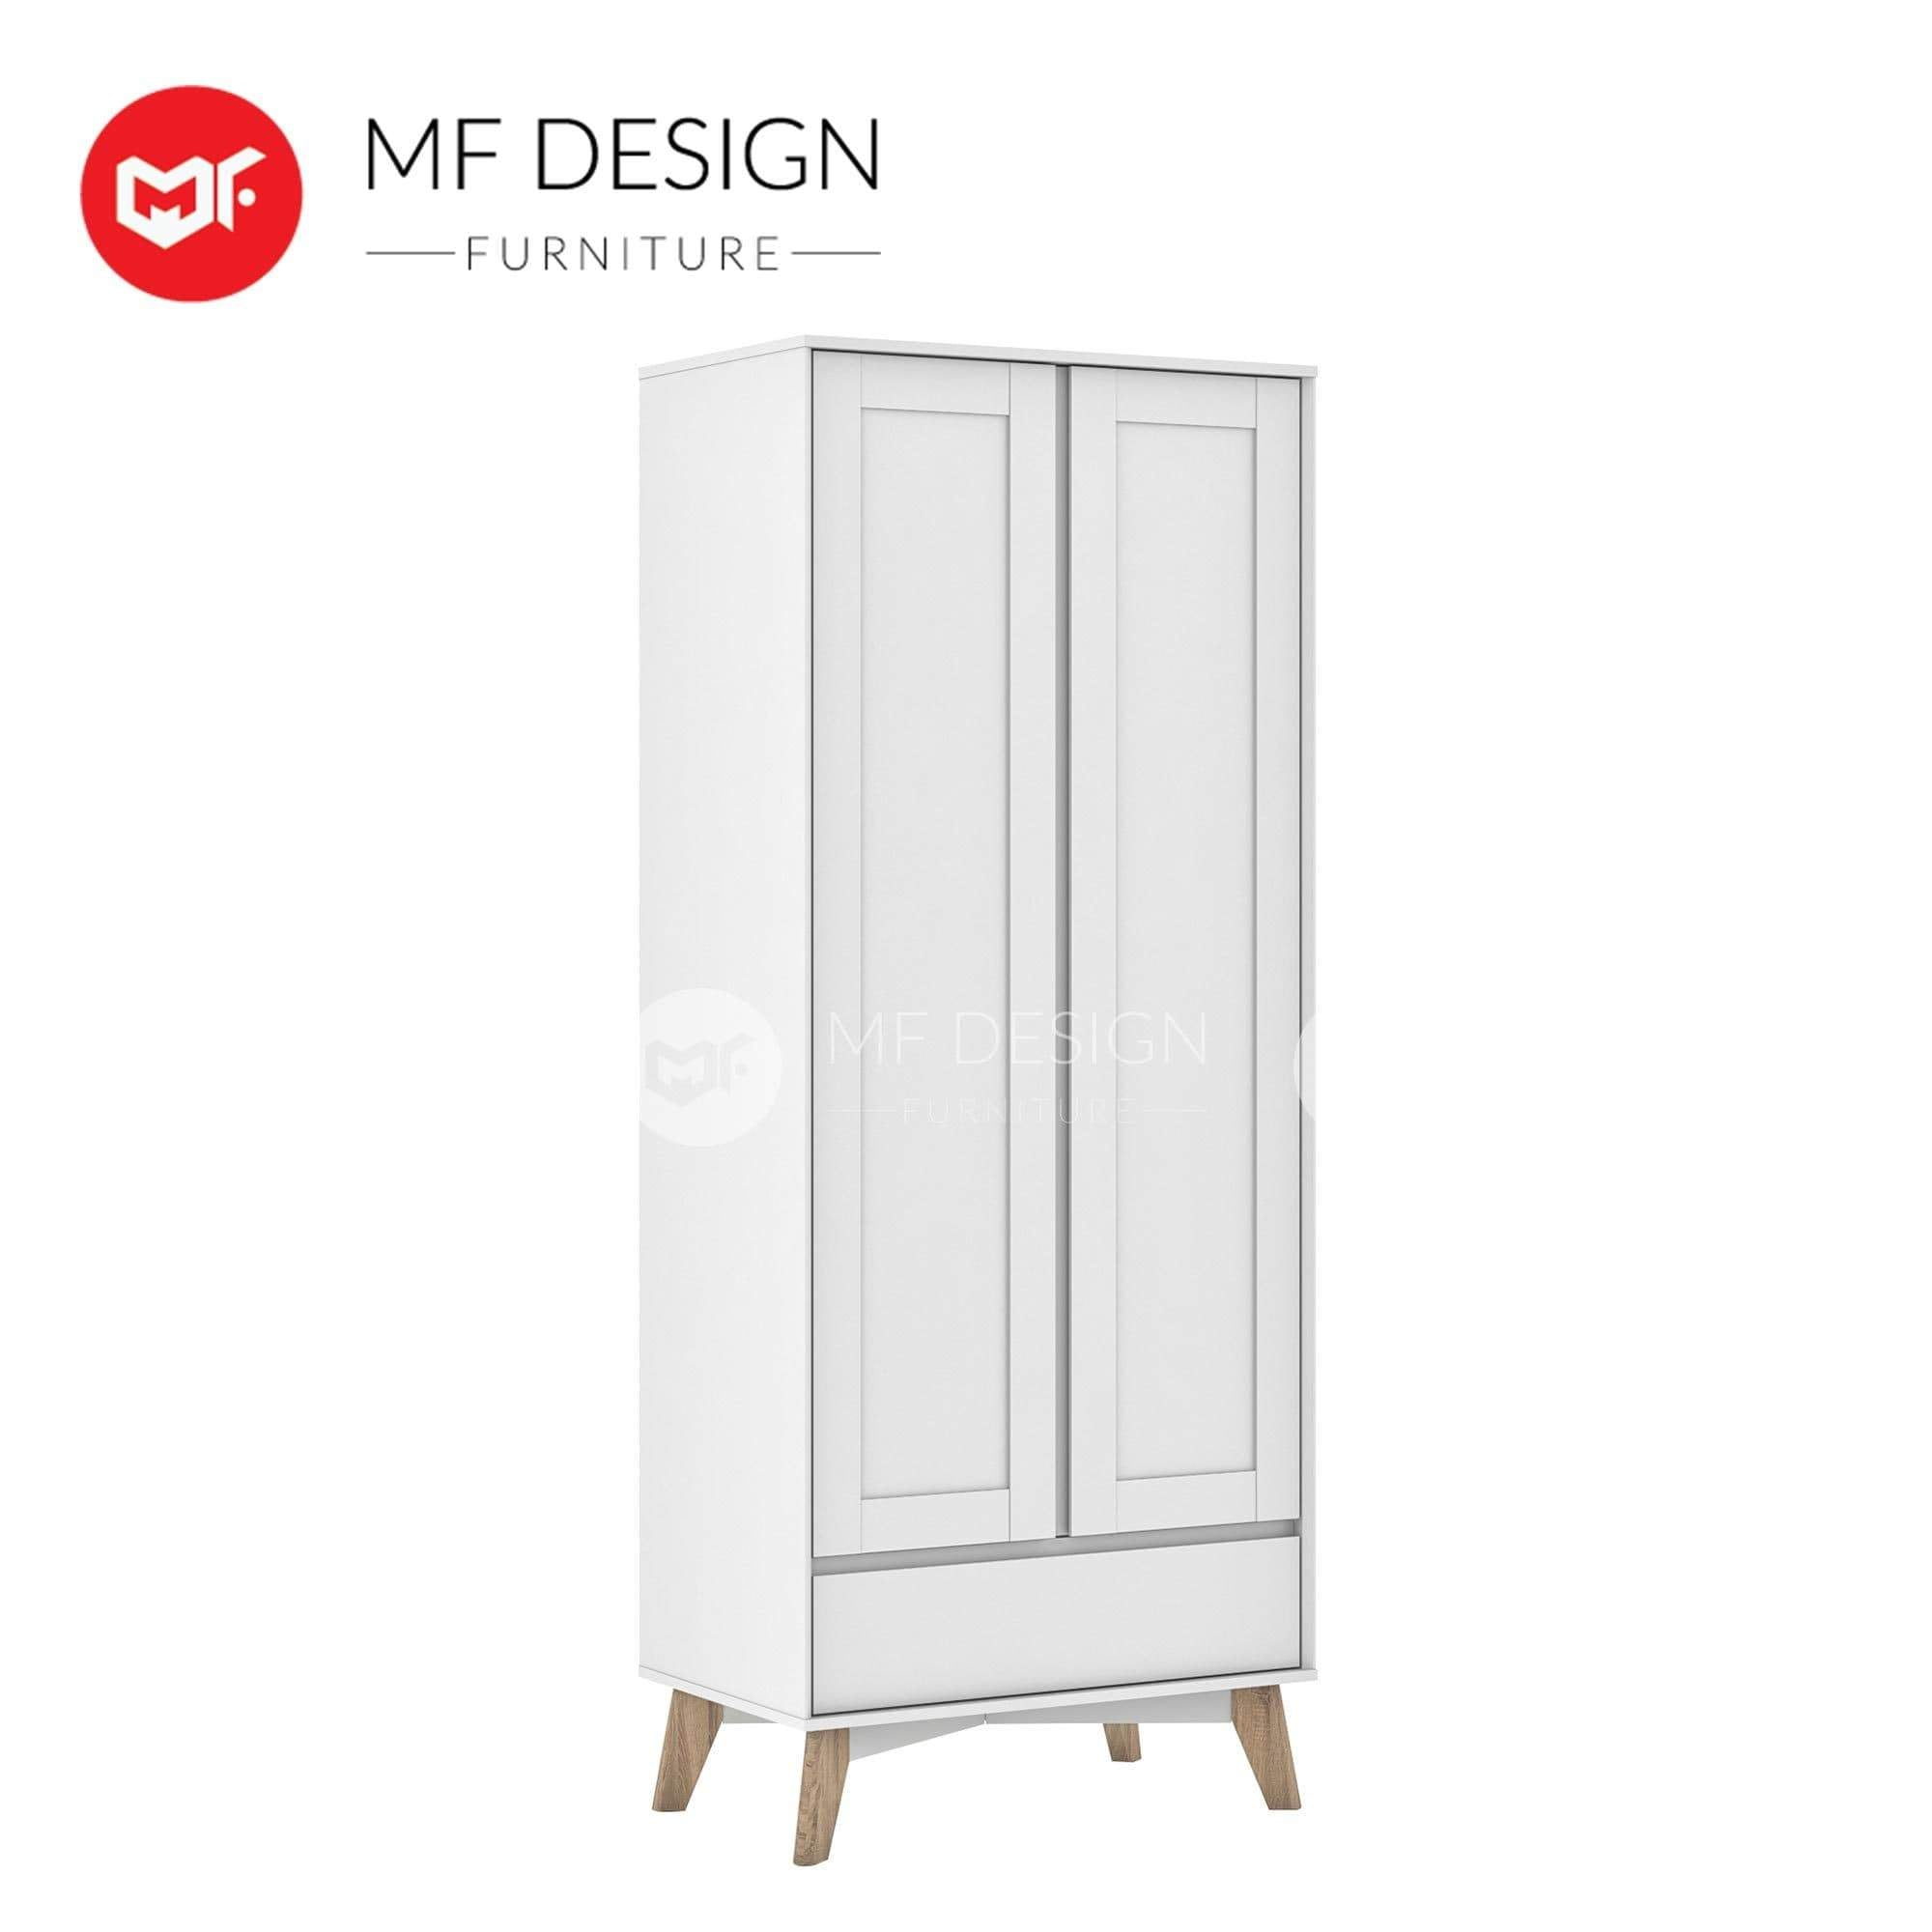 mfdesign88 wardrobe LYDIA 2 DOOR WITH DRAWER WARDROBE